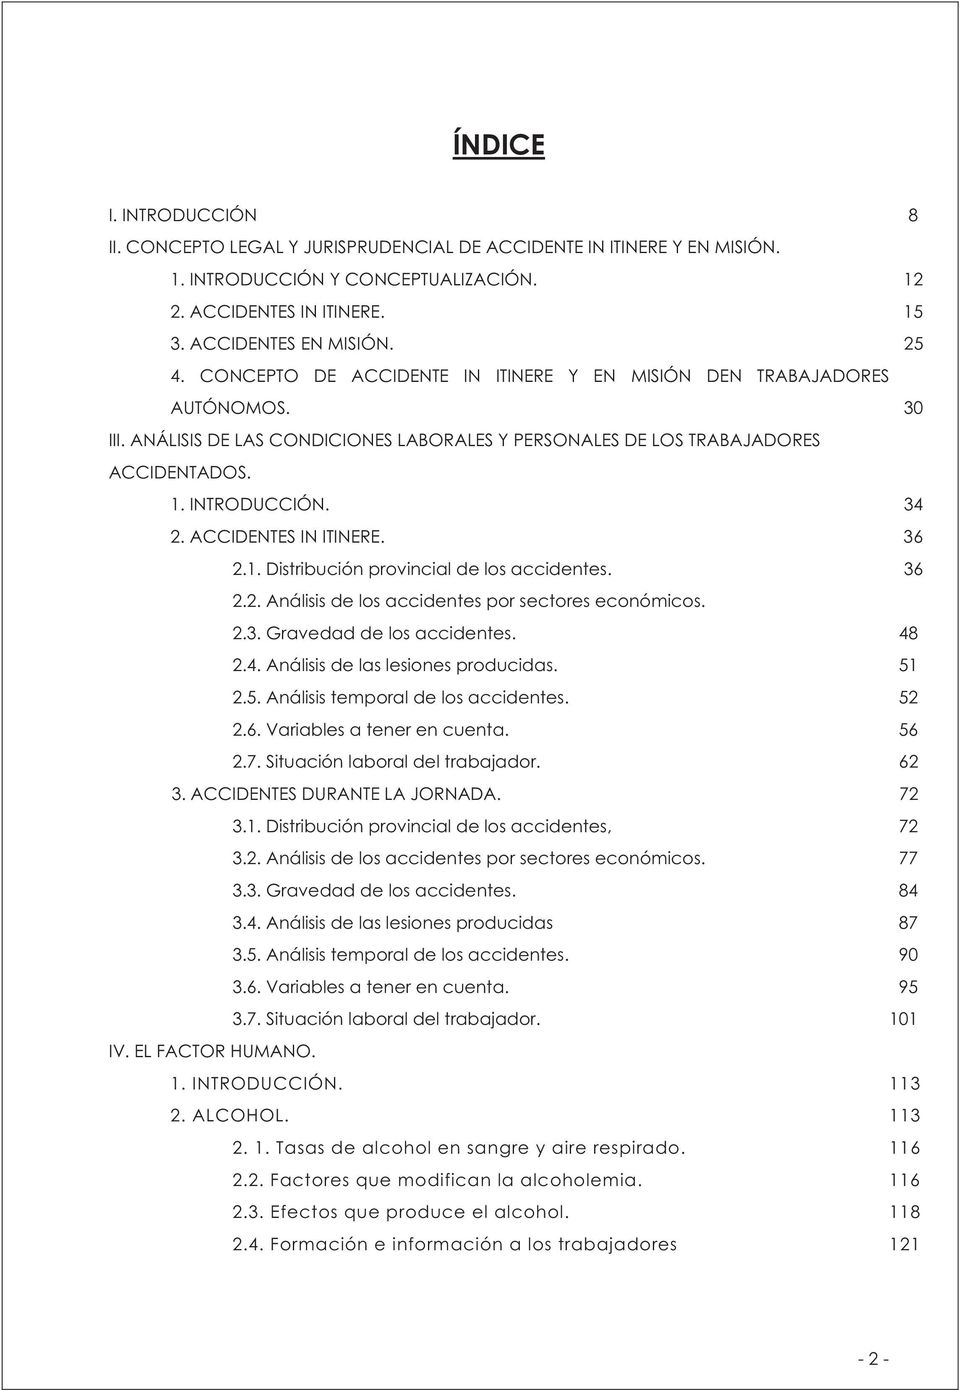 ACCIDENTES IN ITINERE. 36 2.1. Distribución provincial de los accidentes. 36 2.2. Análisis de los accidentes por sectores económicos. 2.3. Gravedad de los accidentes. 48